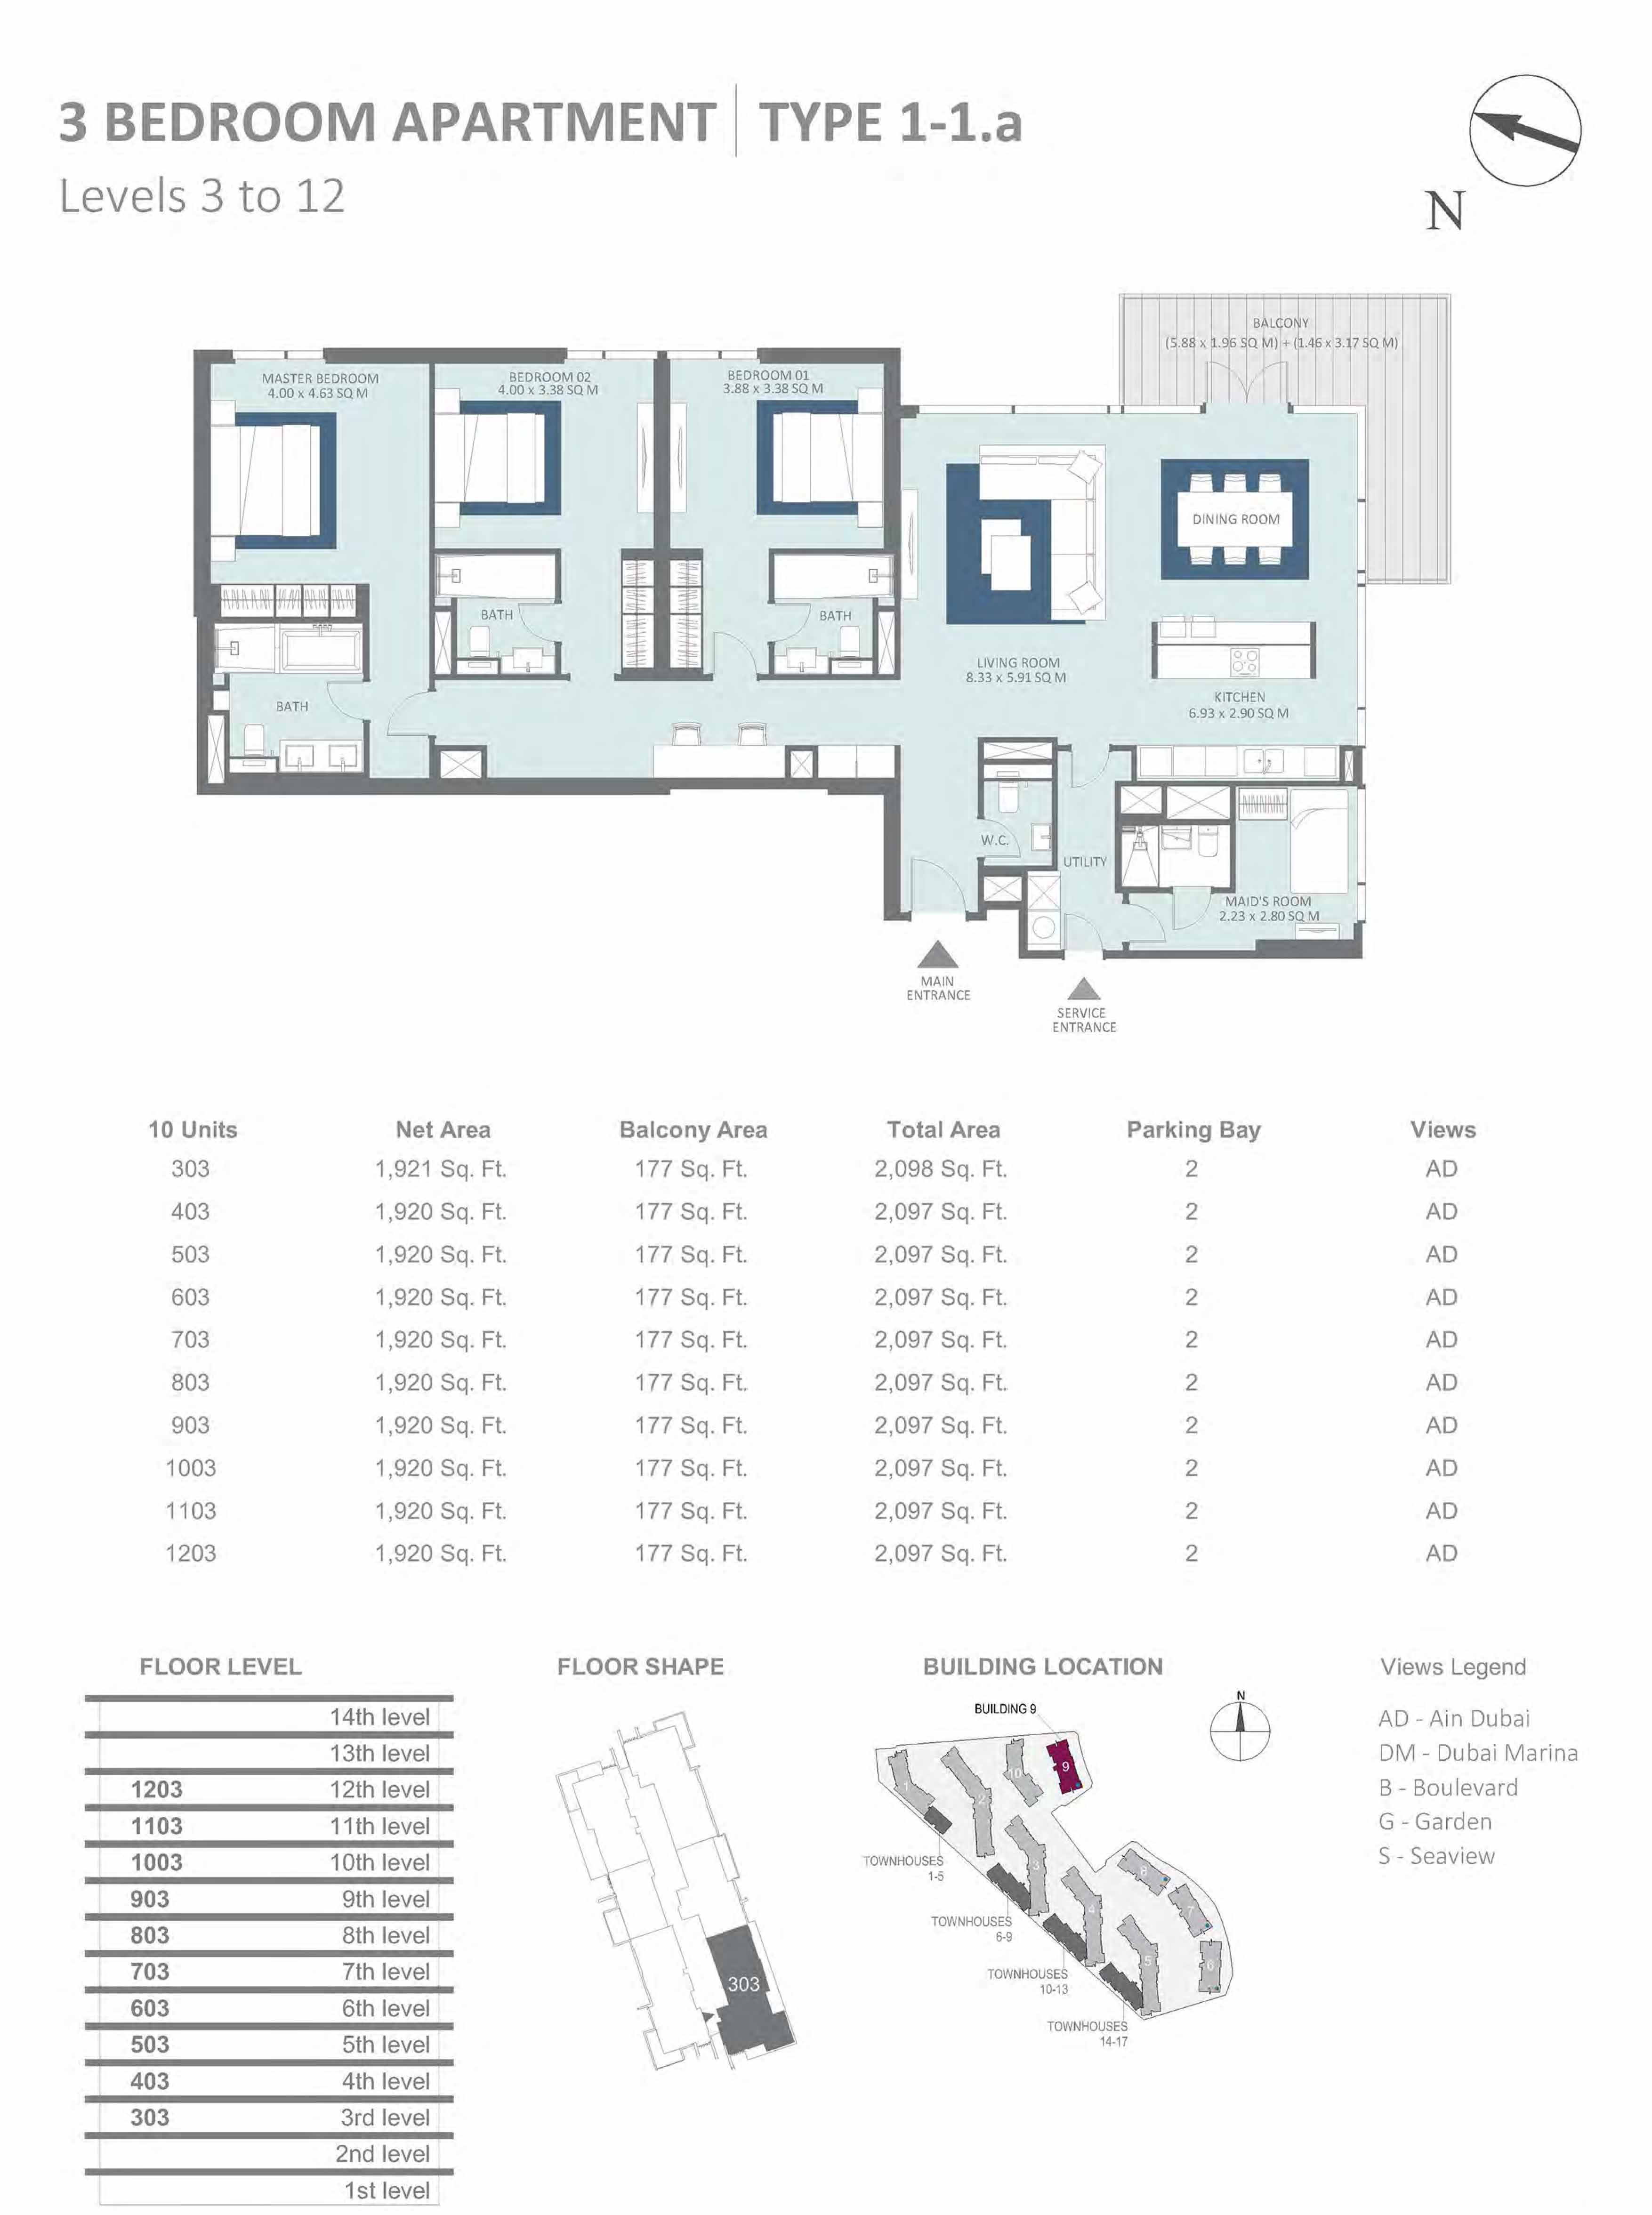 Building 9 - 3 Bedroom Type 1-1A, Level 3-to-12 Size 2097 to 2098 sq.ft